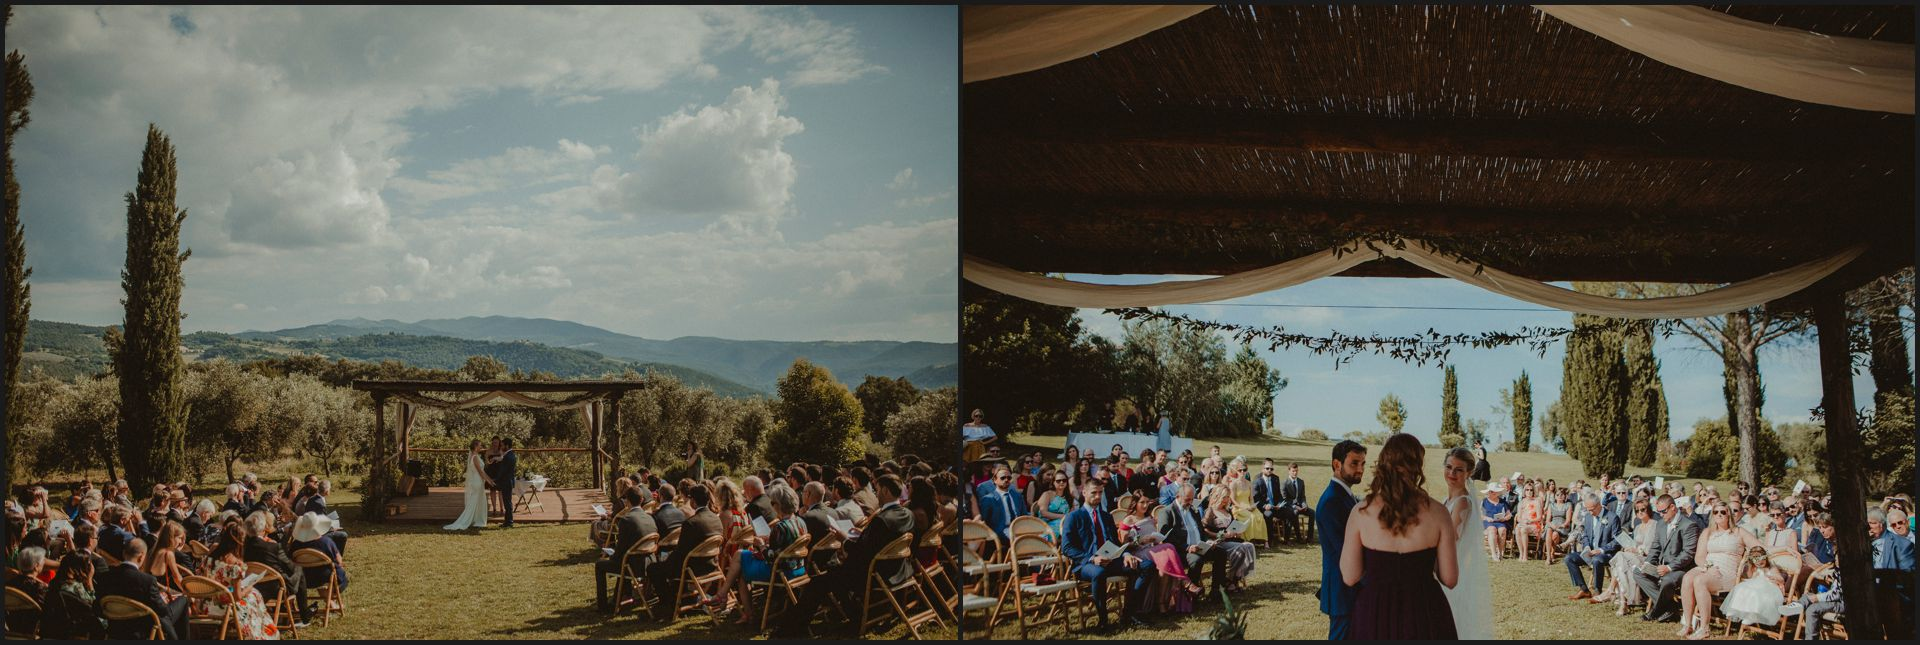 tenuta di canonica, umbria, wedding, ceremony, country